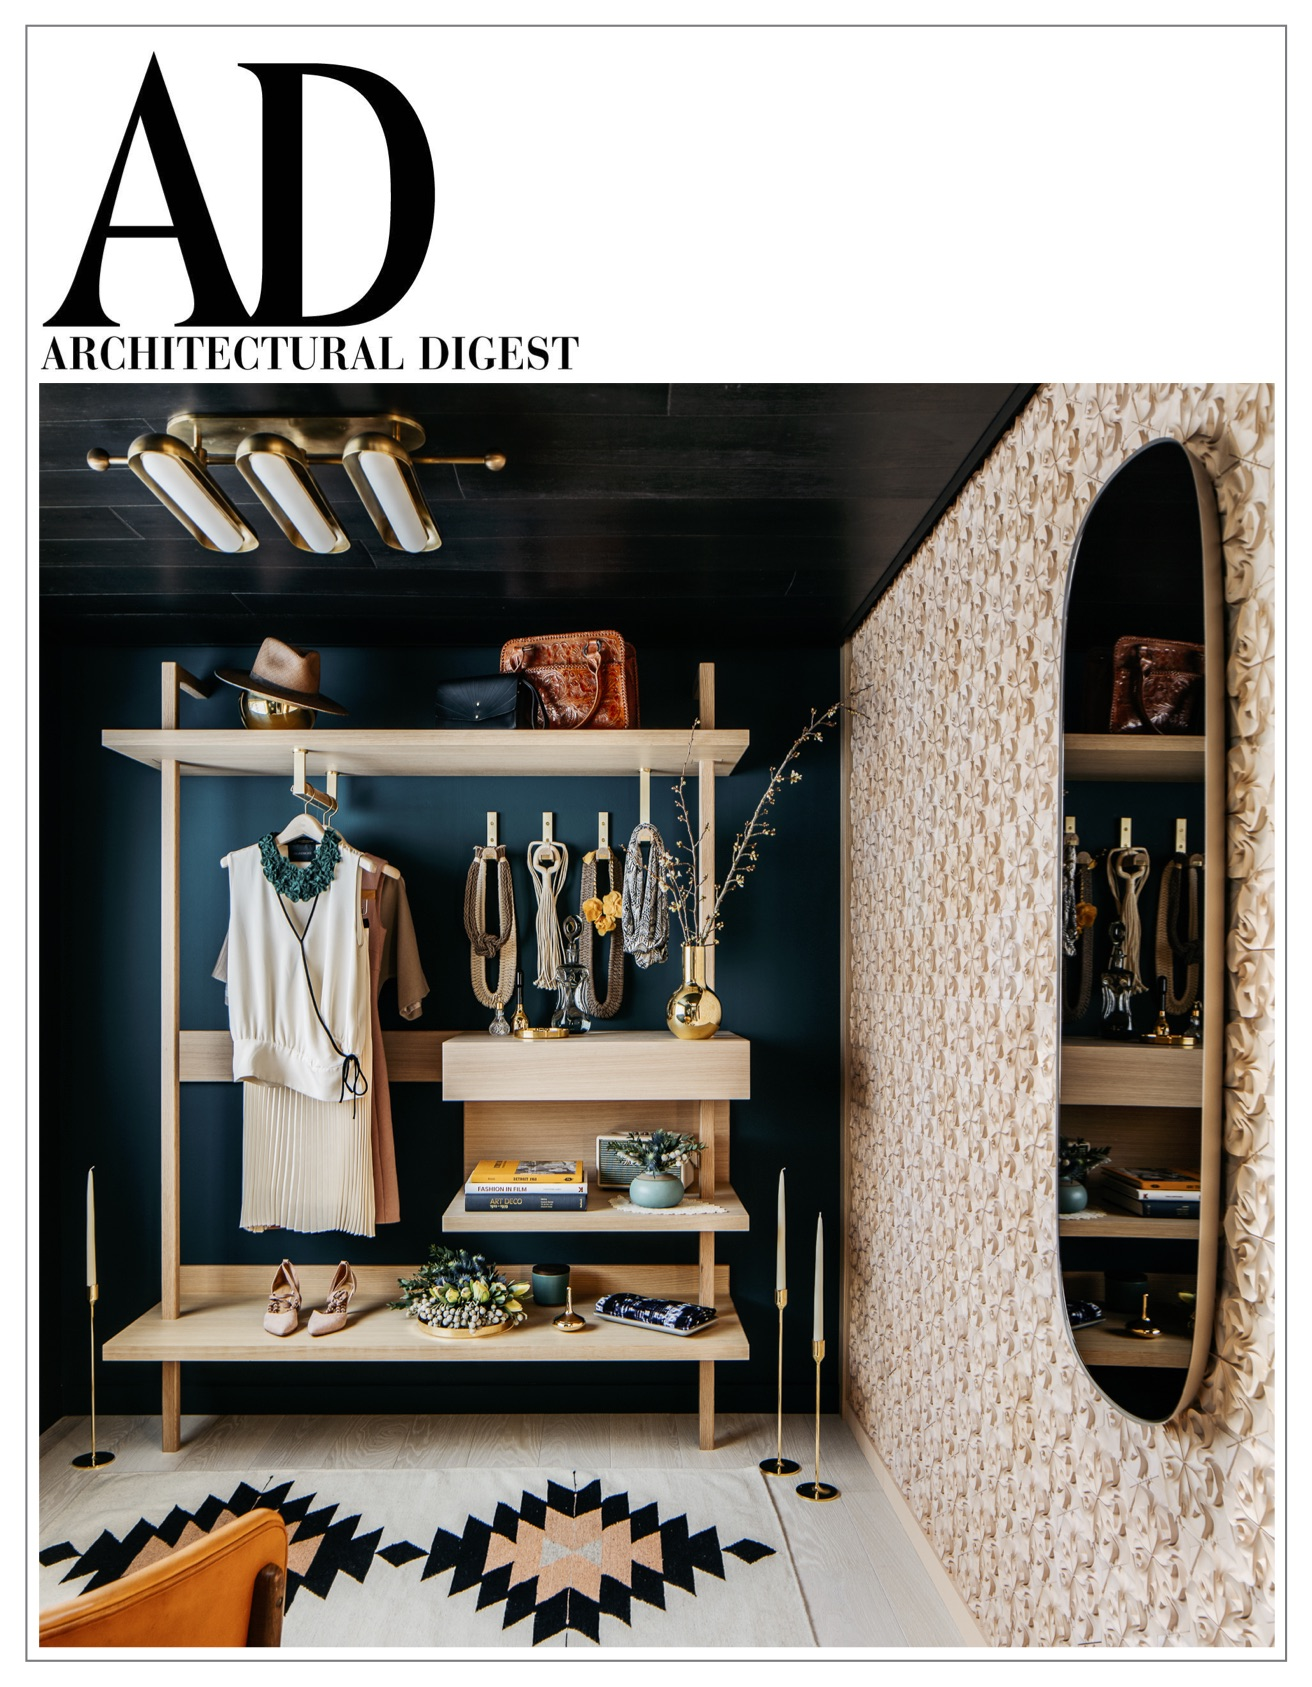 ArchDigest_8.5x11_OPT2.jpg